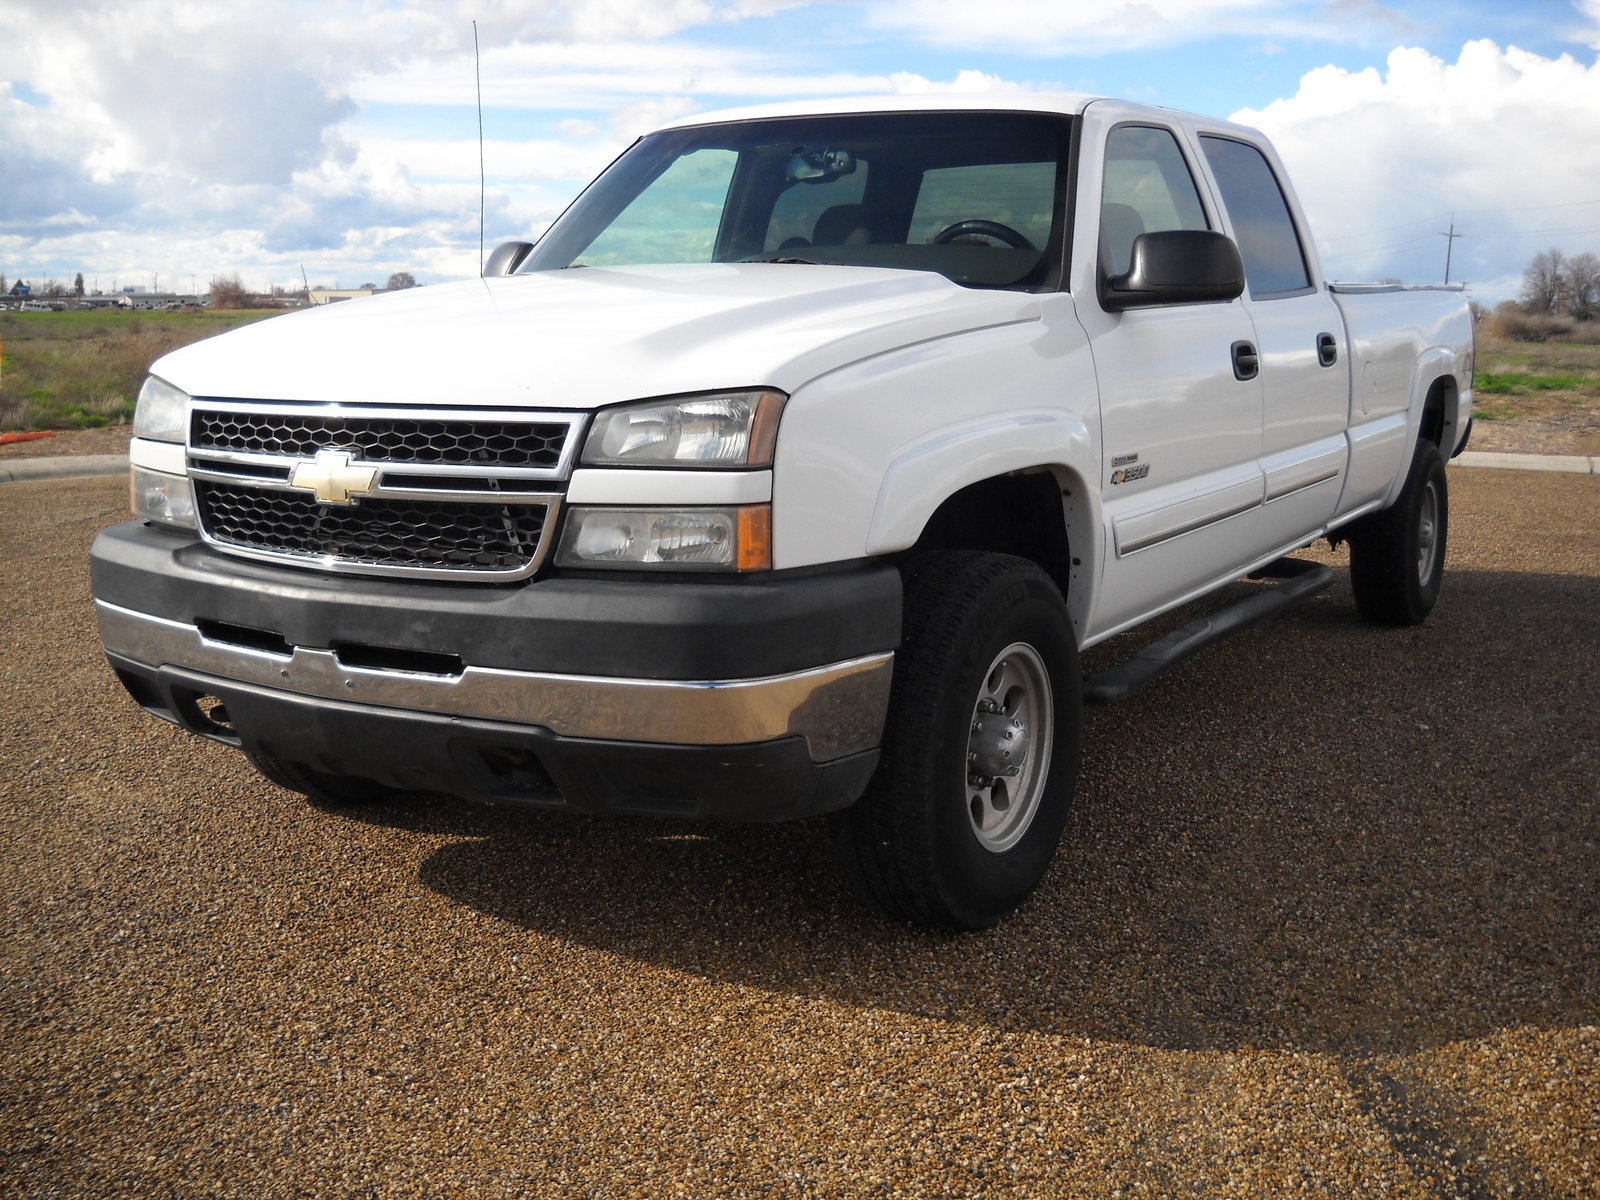 2006 chevrolet silverado 3500 pictures cargurus. Black Bedroom Furniture Sets. Home Design Ideas